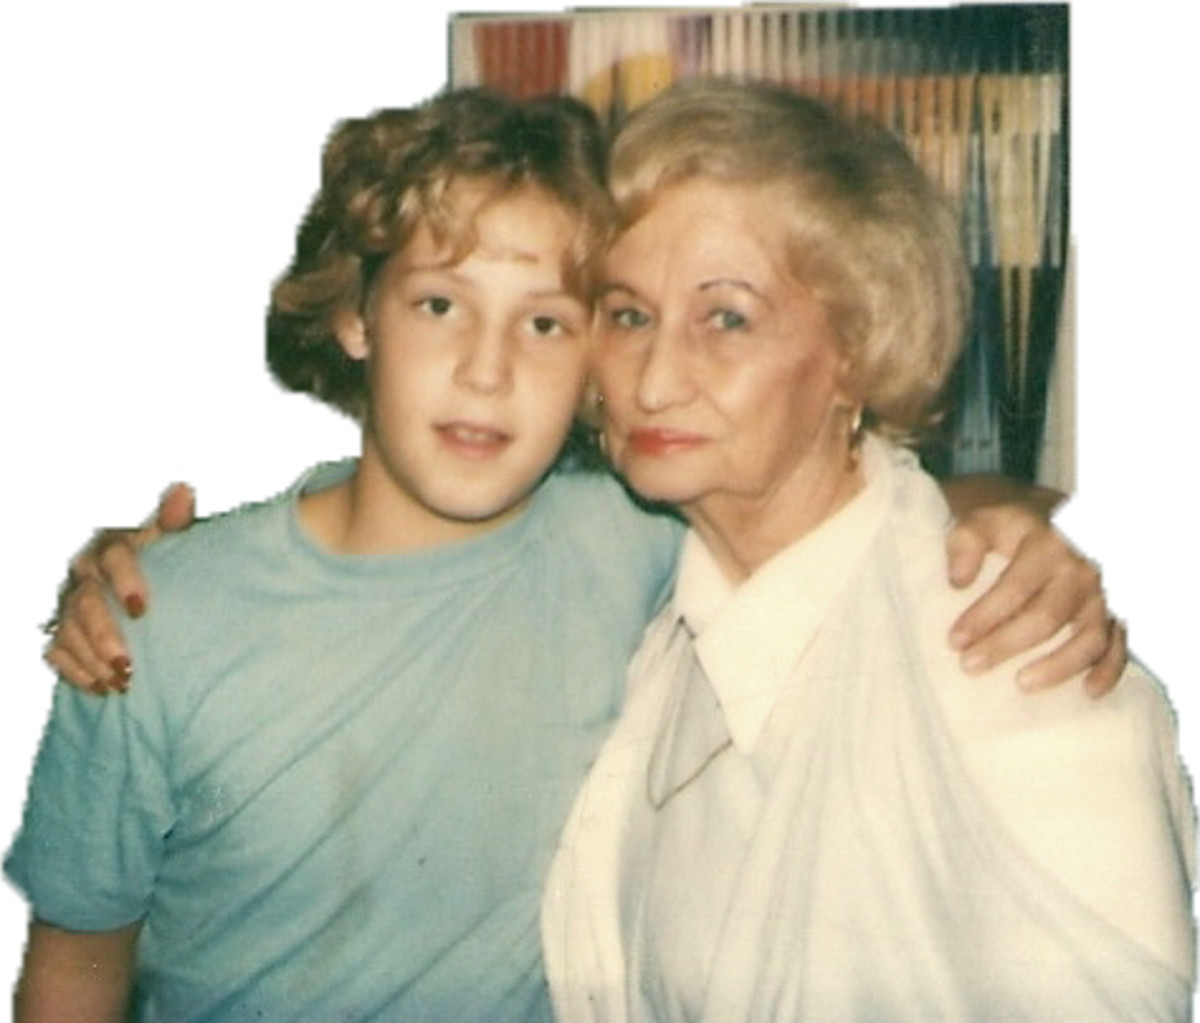 Peter Kellerman taking a photo with his paternal Grandmother Evelyn Kellerman (nee Kadis) otherwise known as Nana Sweetie.